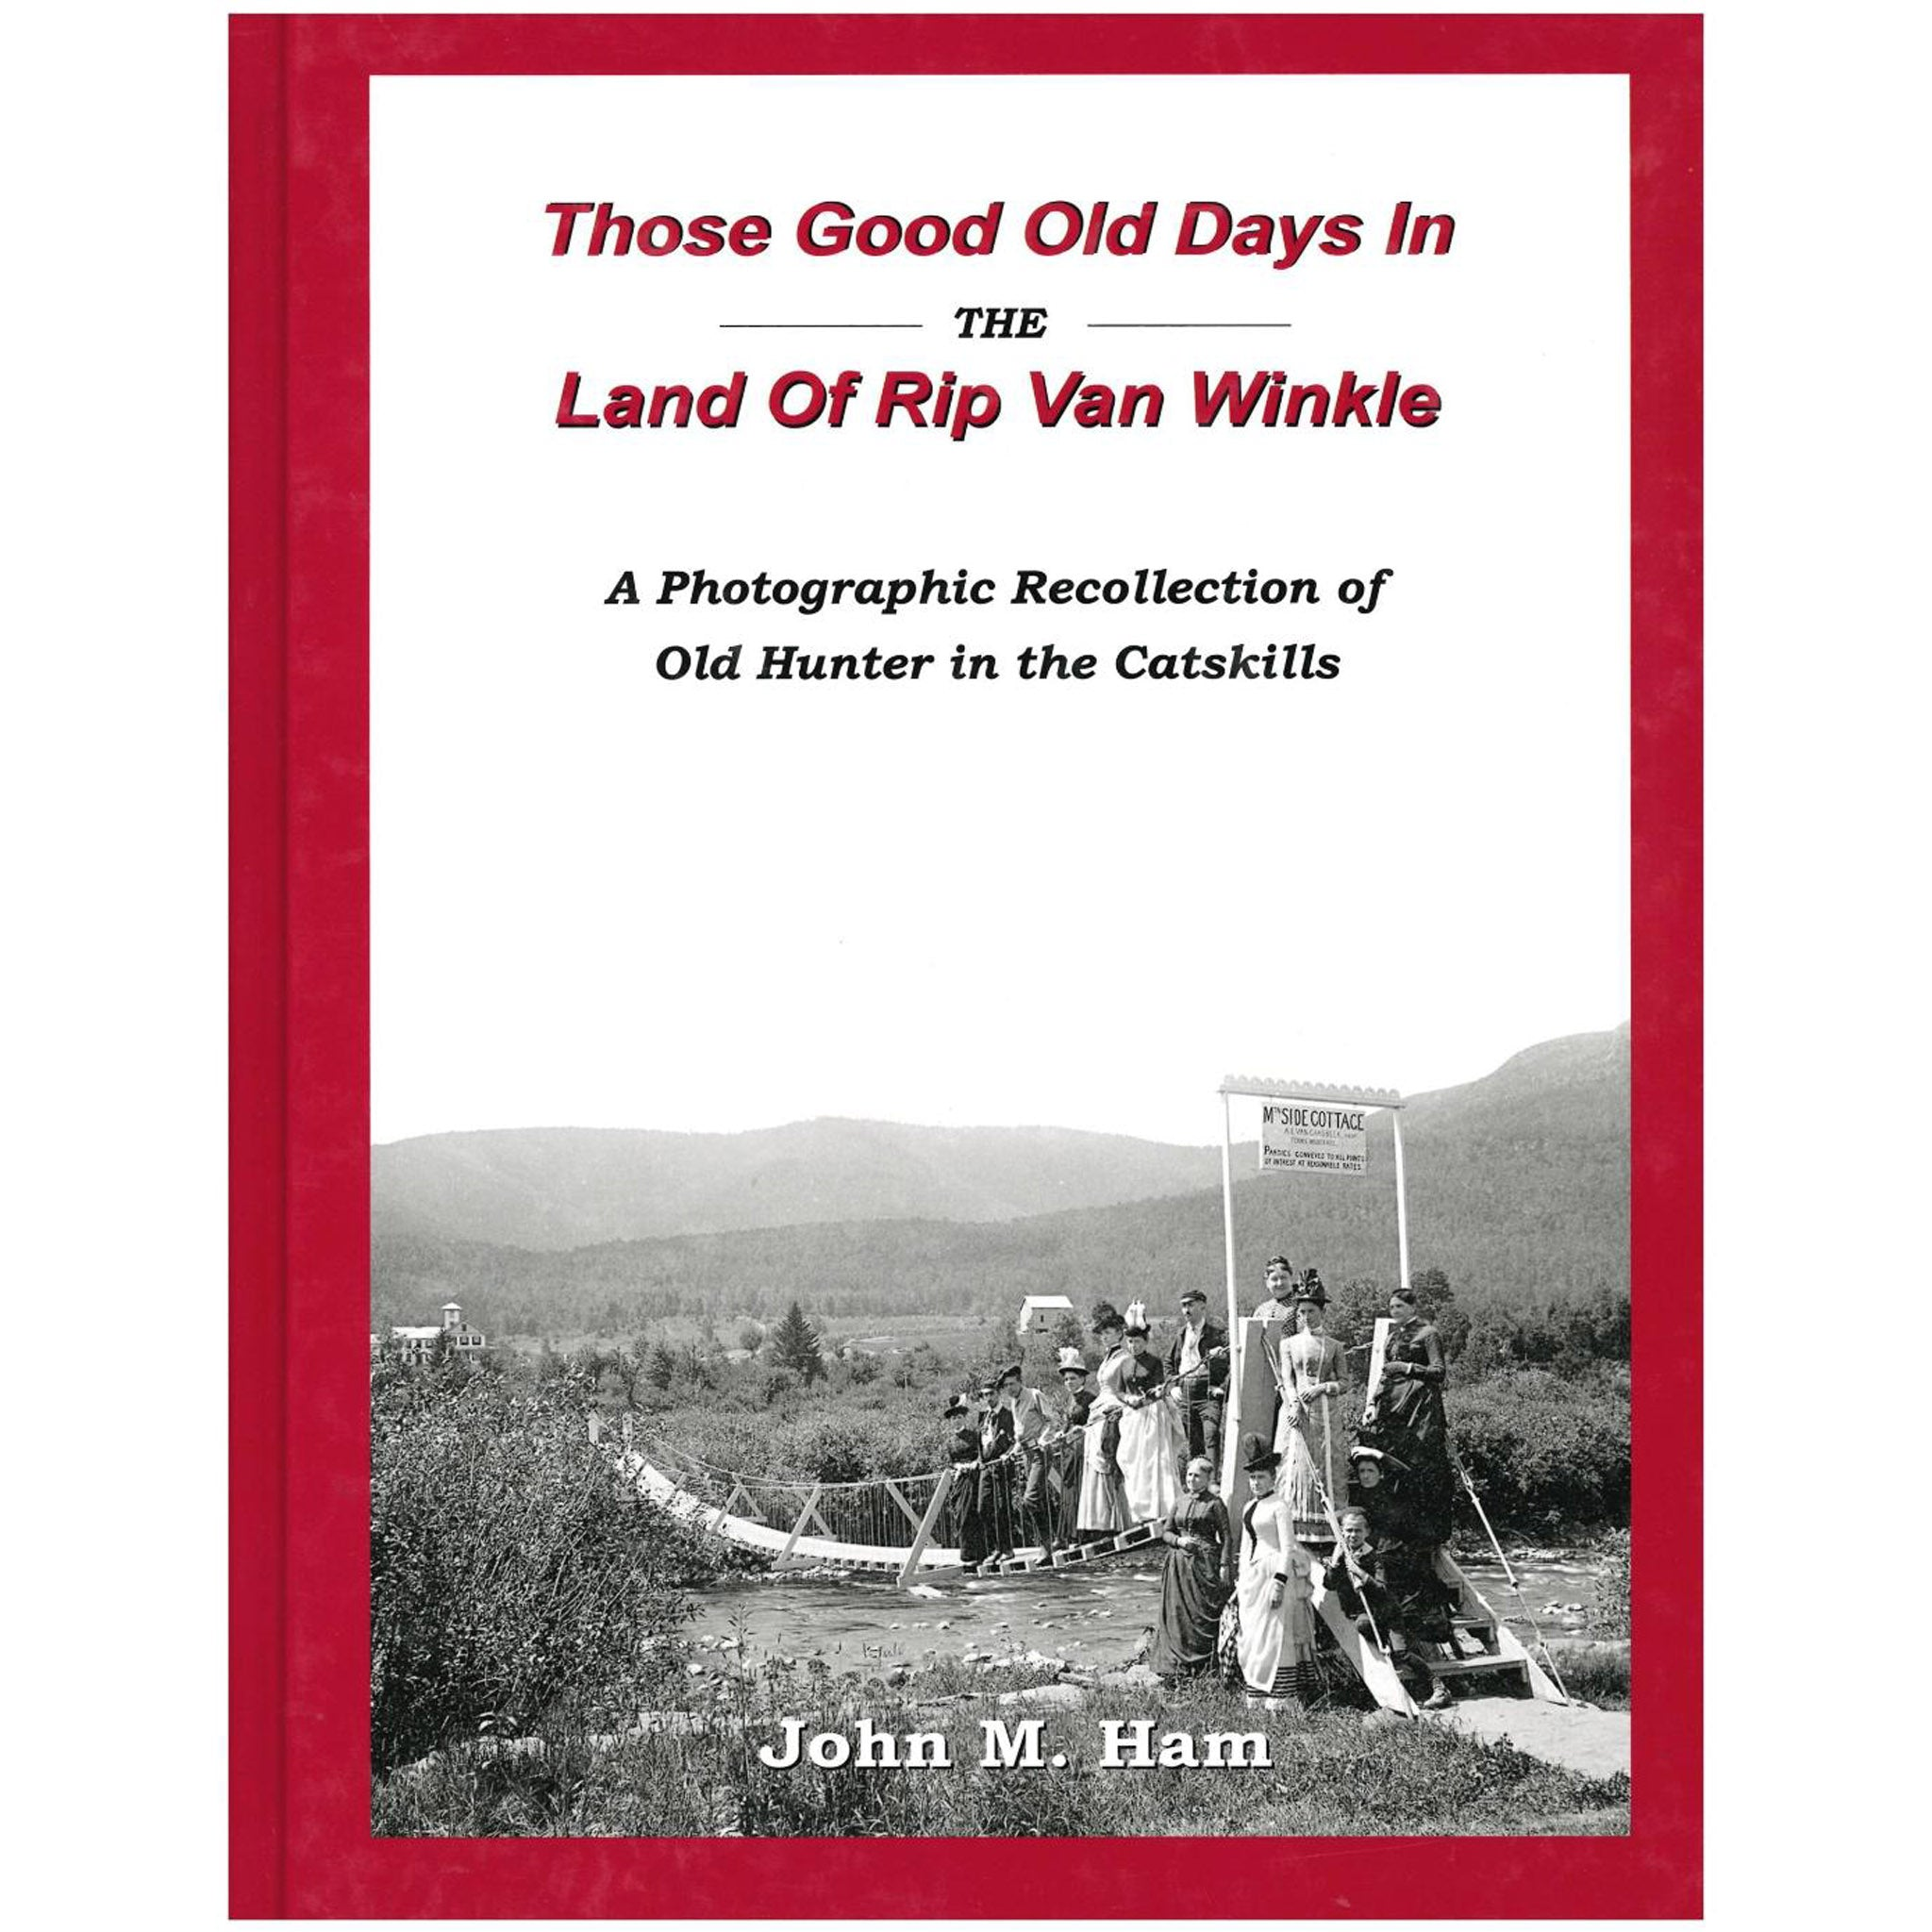 Those Good Old Days in the Land of Rip Van Winkle